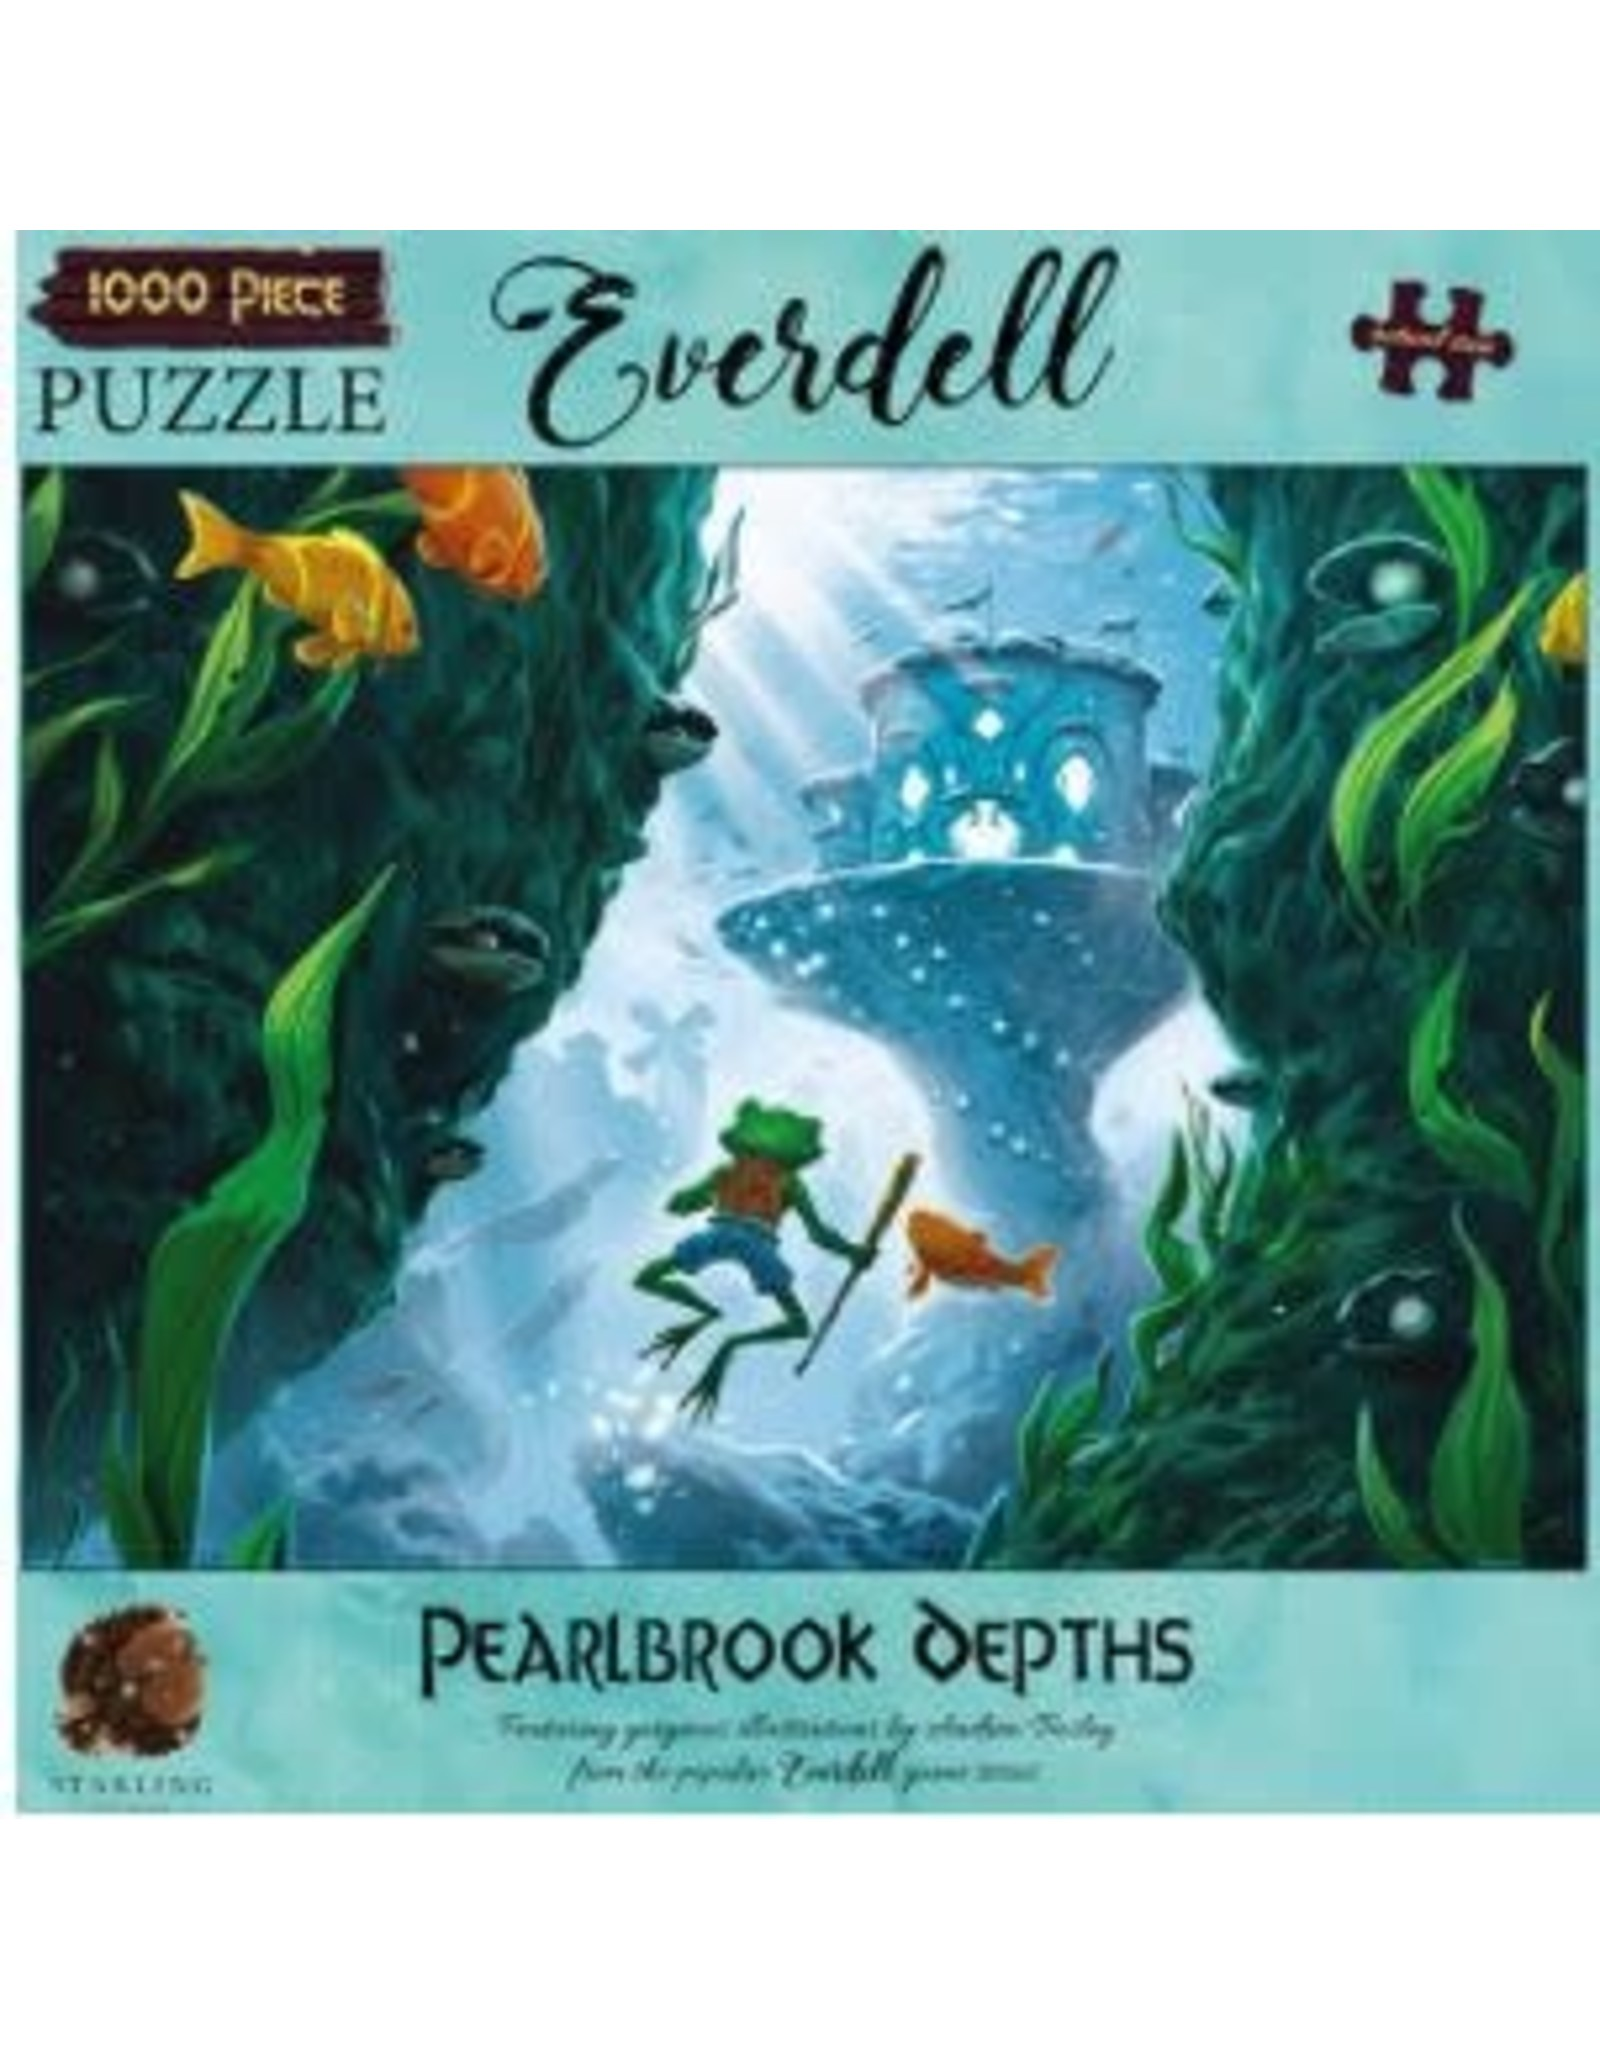 1000PC EVERDELL PUZZLE - PEARLBROOK DEPTHS